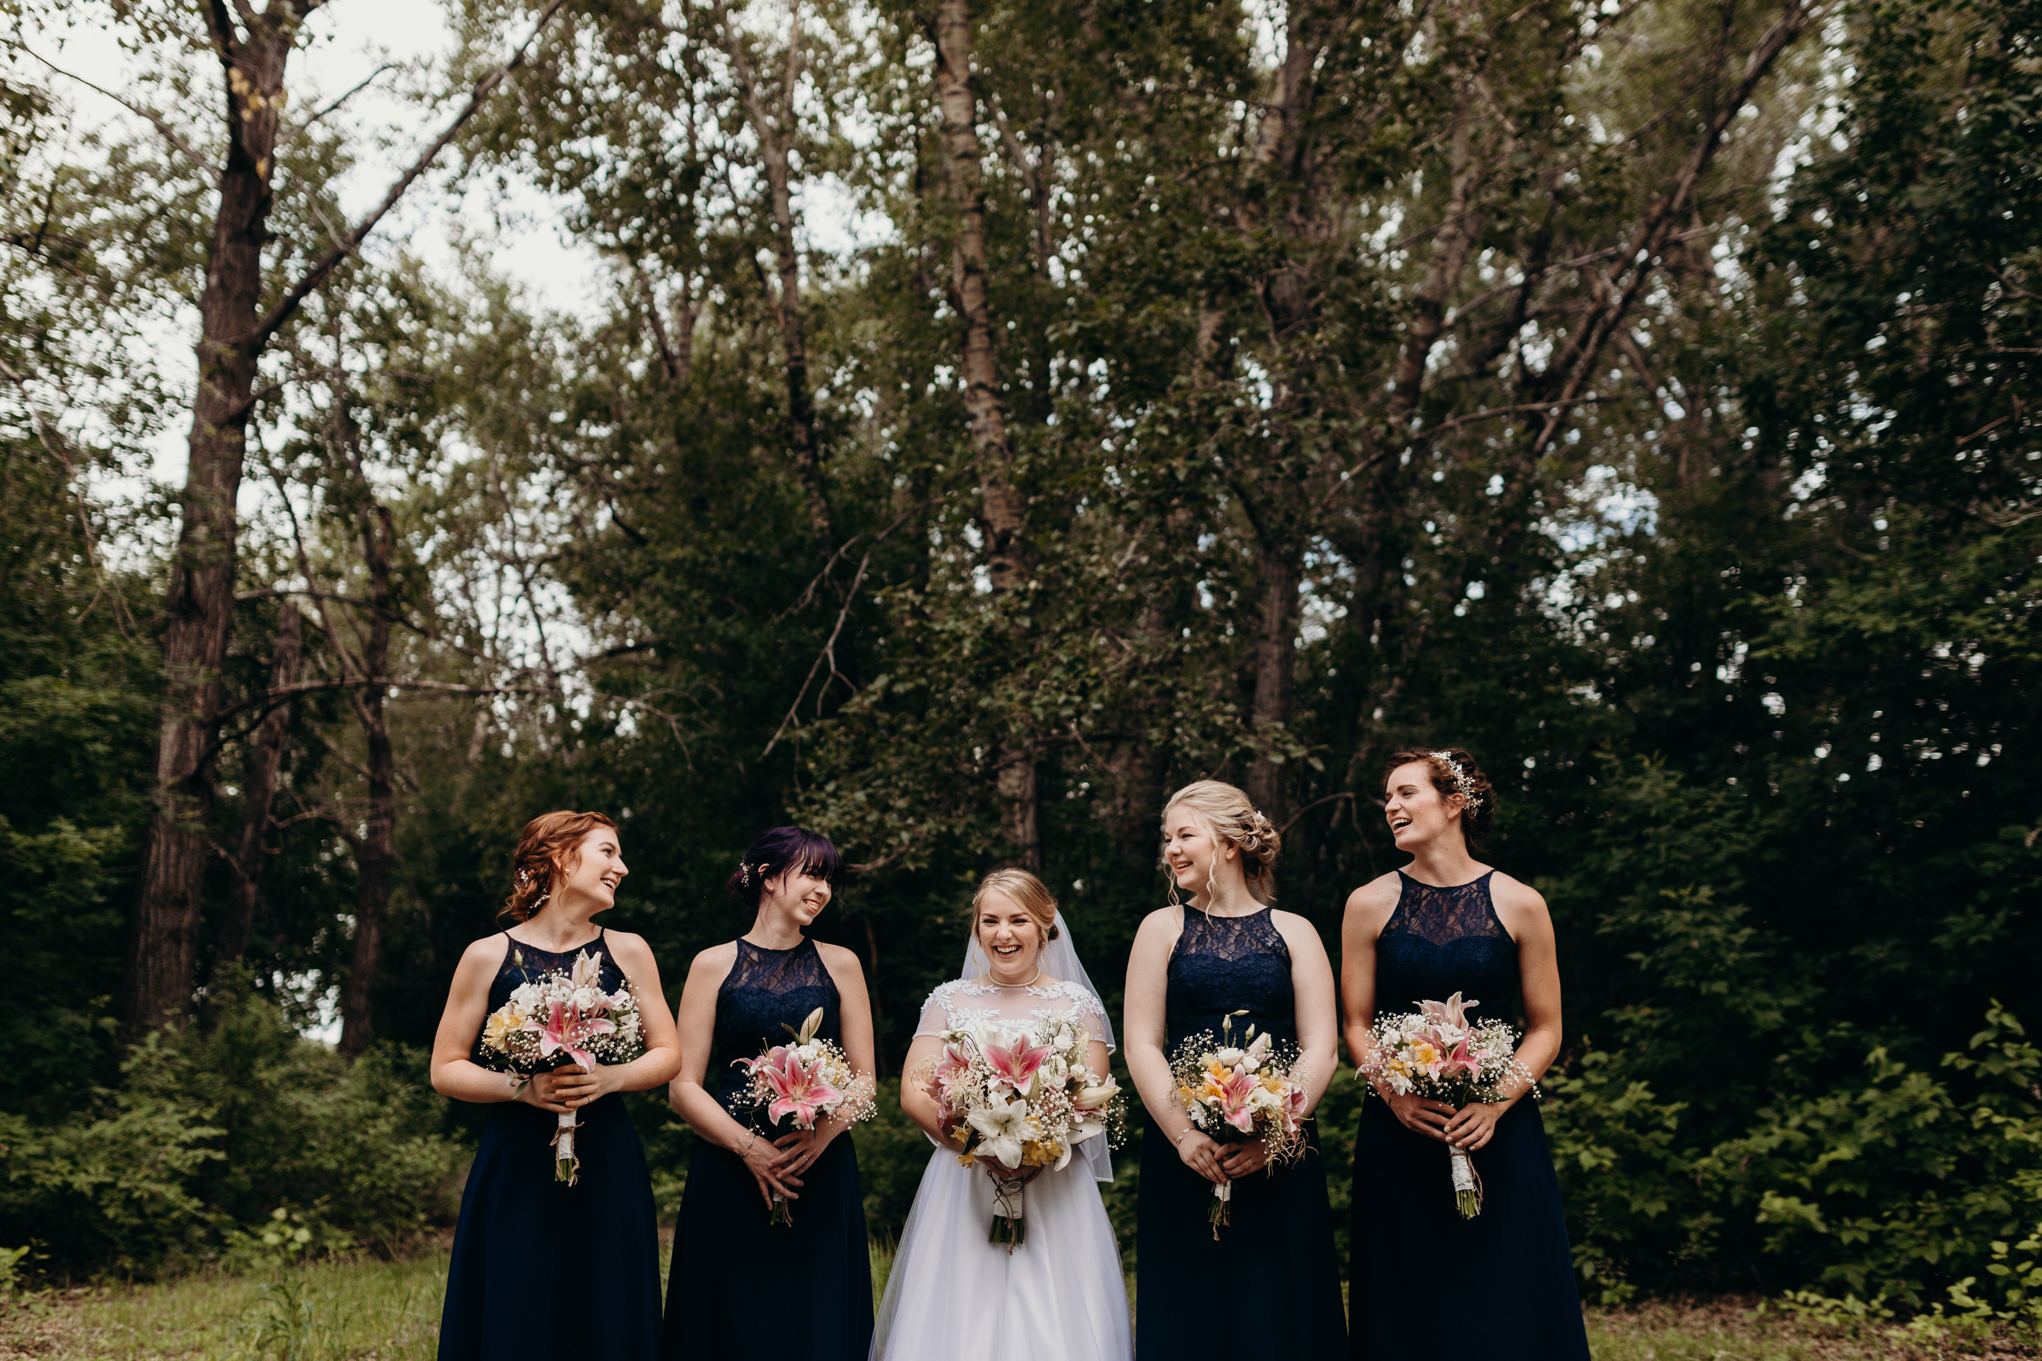 2019 Wedding Photos-46.jpg